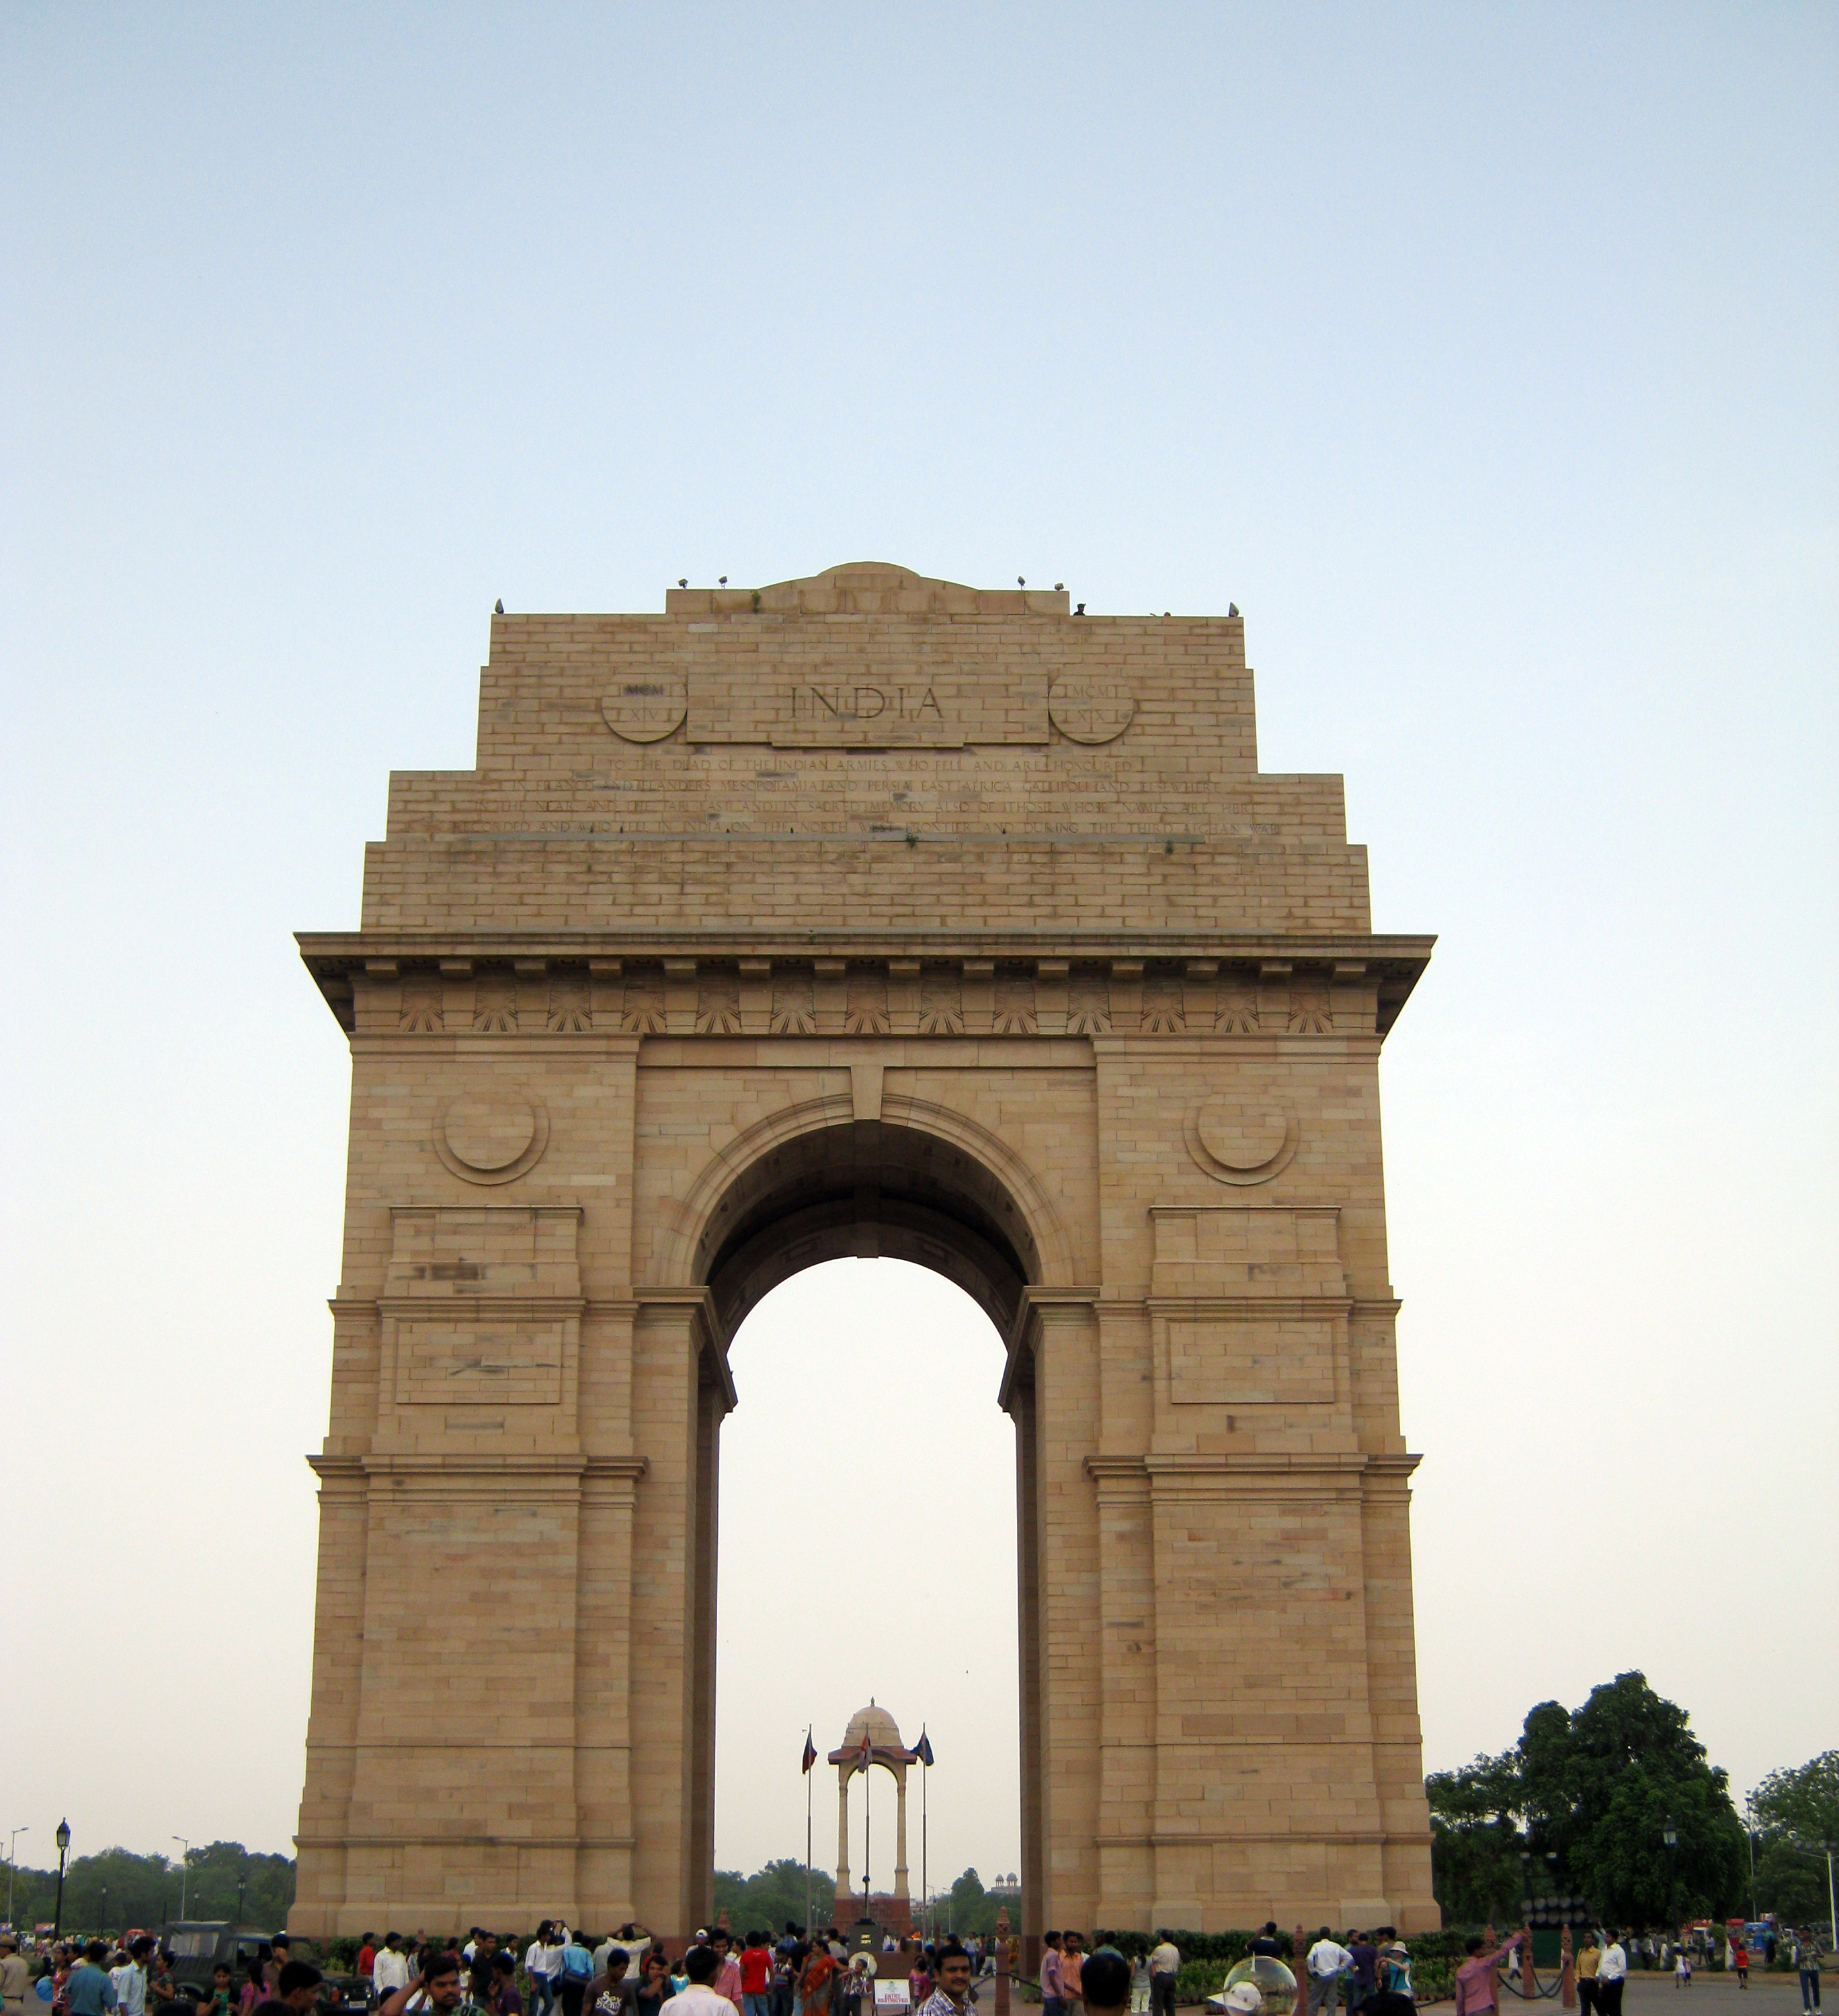 essay on india gate delhi As india gears up to celebrate the 69th republic day on friday, the whole  country will be watching the parade along the rajpath near india gate.